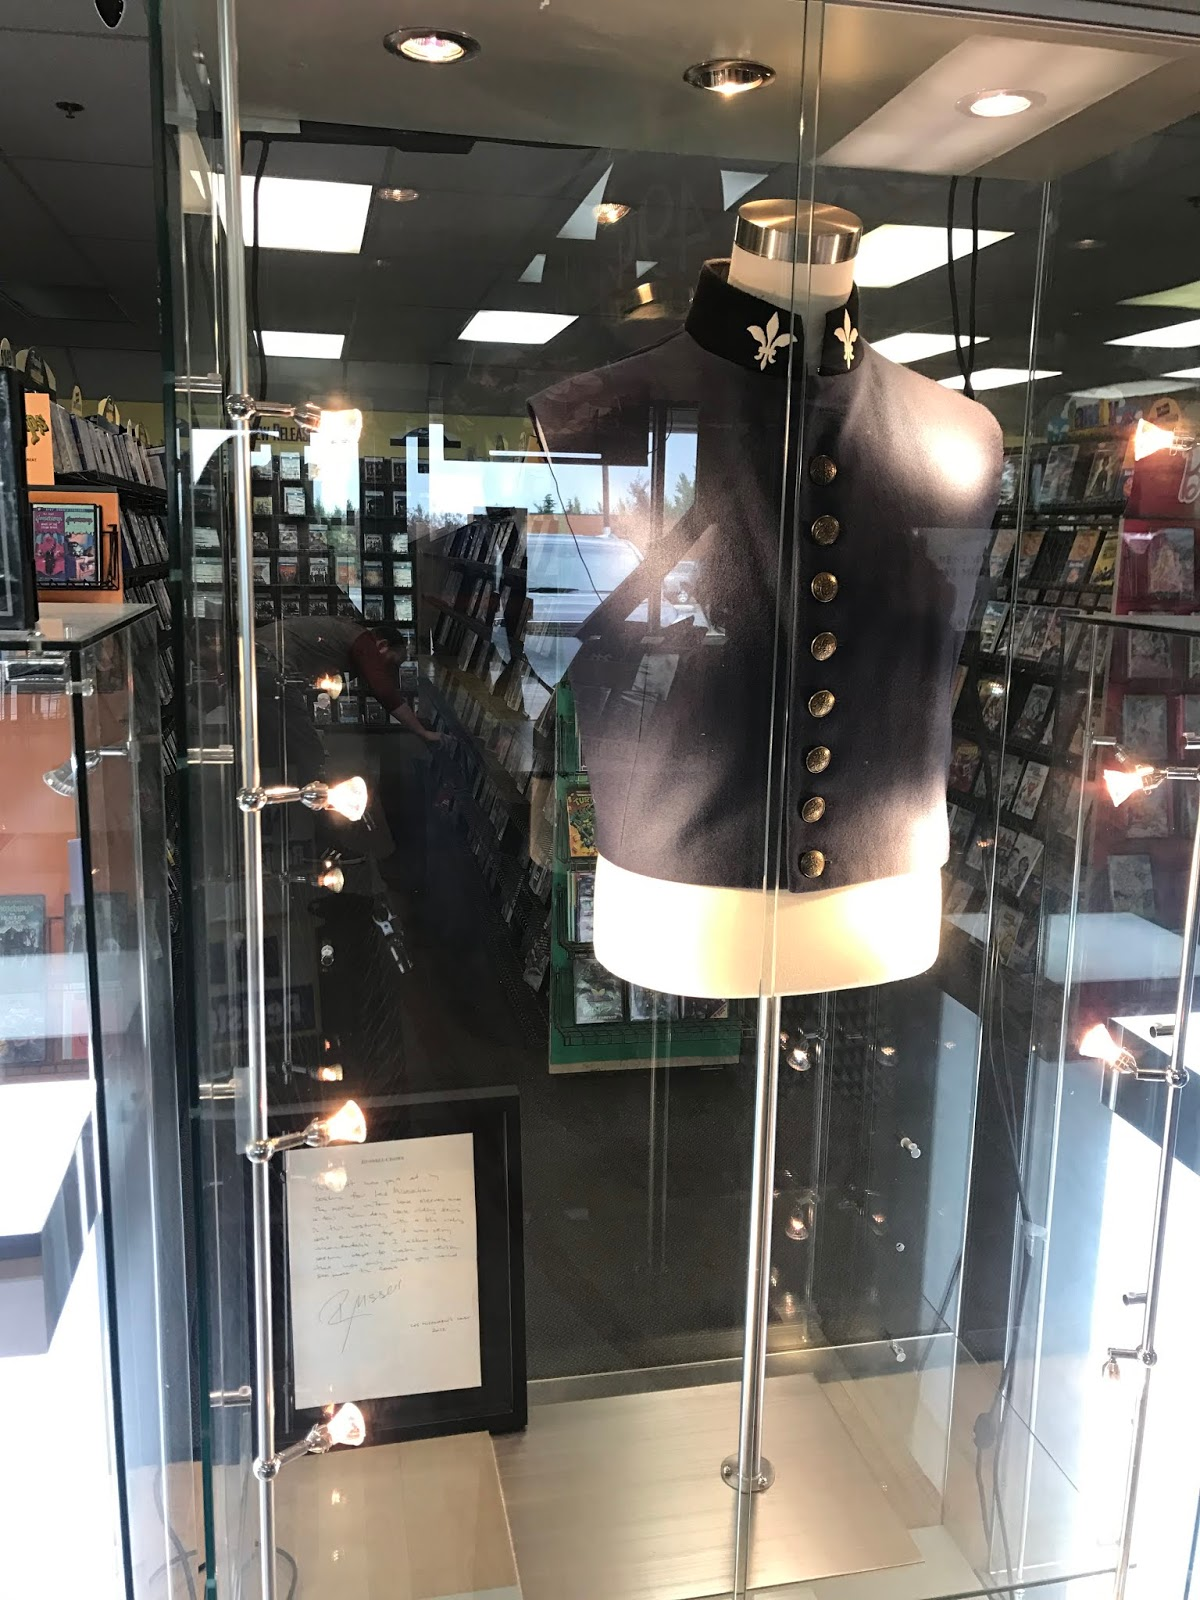 unfortunately the day after our visit the store announced that it would be closing next week temporarily and only reopening to have a liquidation sale